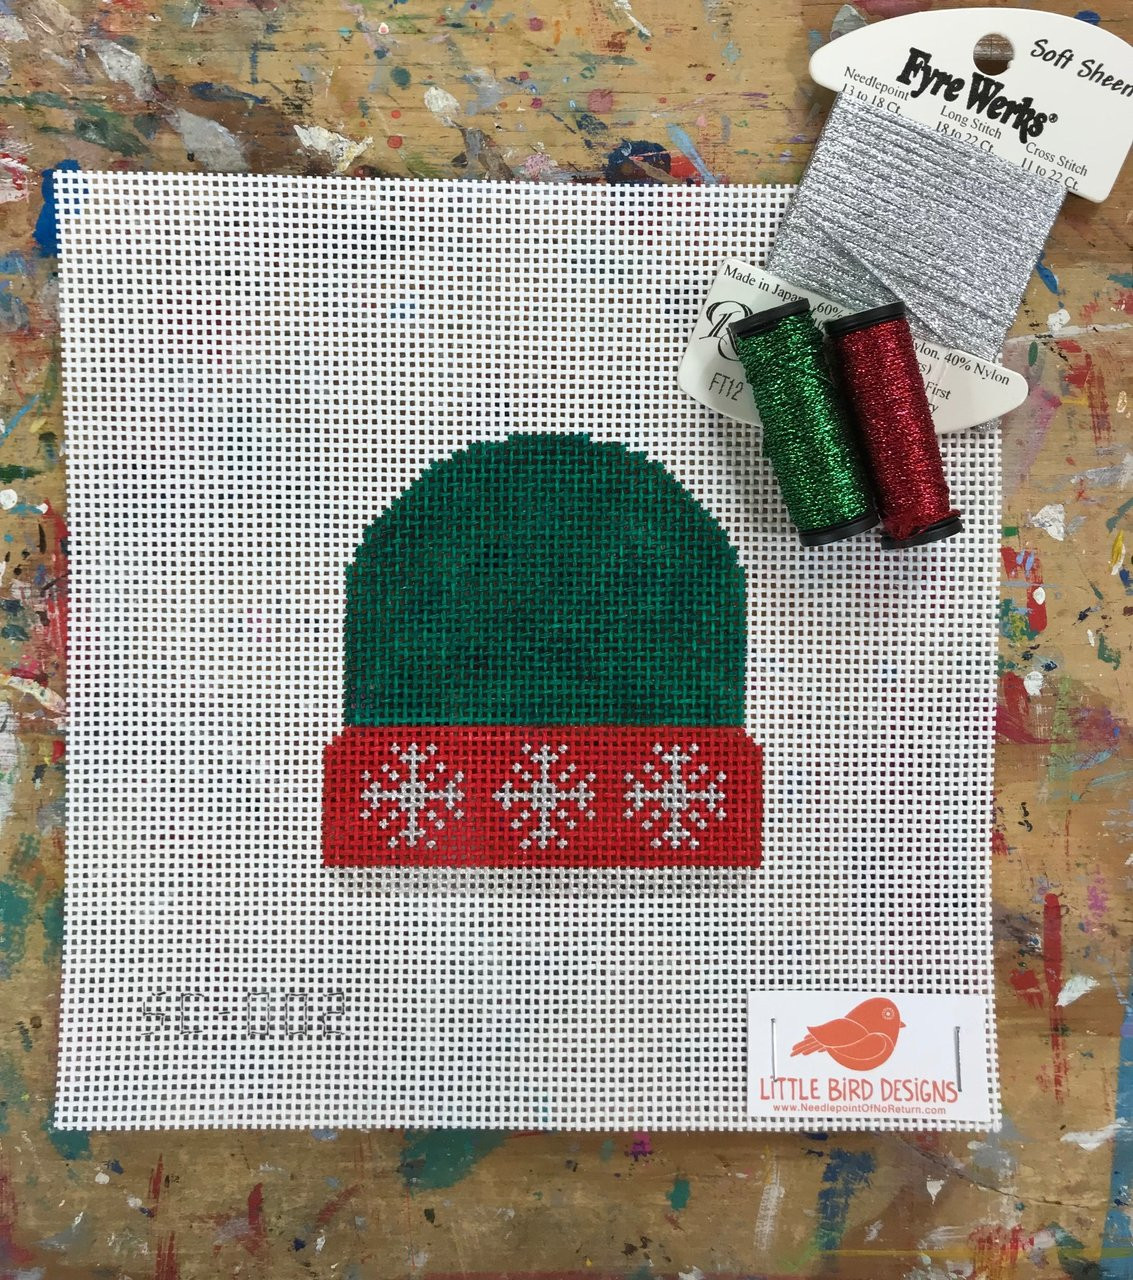 c8125fd46be SC-002 Green with silver snowflakes Stocking Cap About 3.5″ square 13 Mesh  Little Bird Designs - The NeedleArt Closet